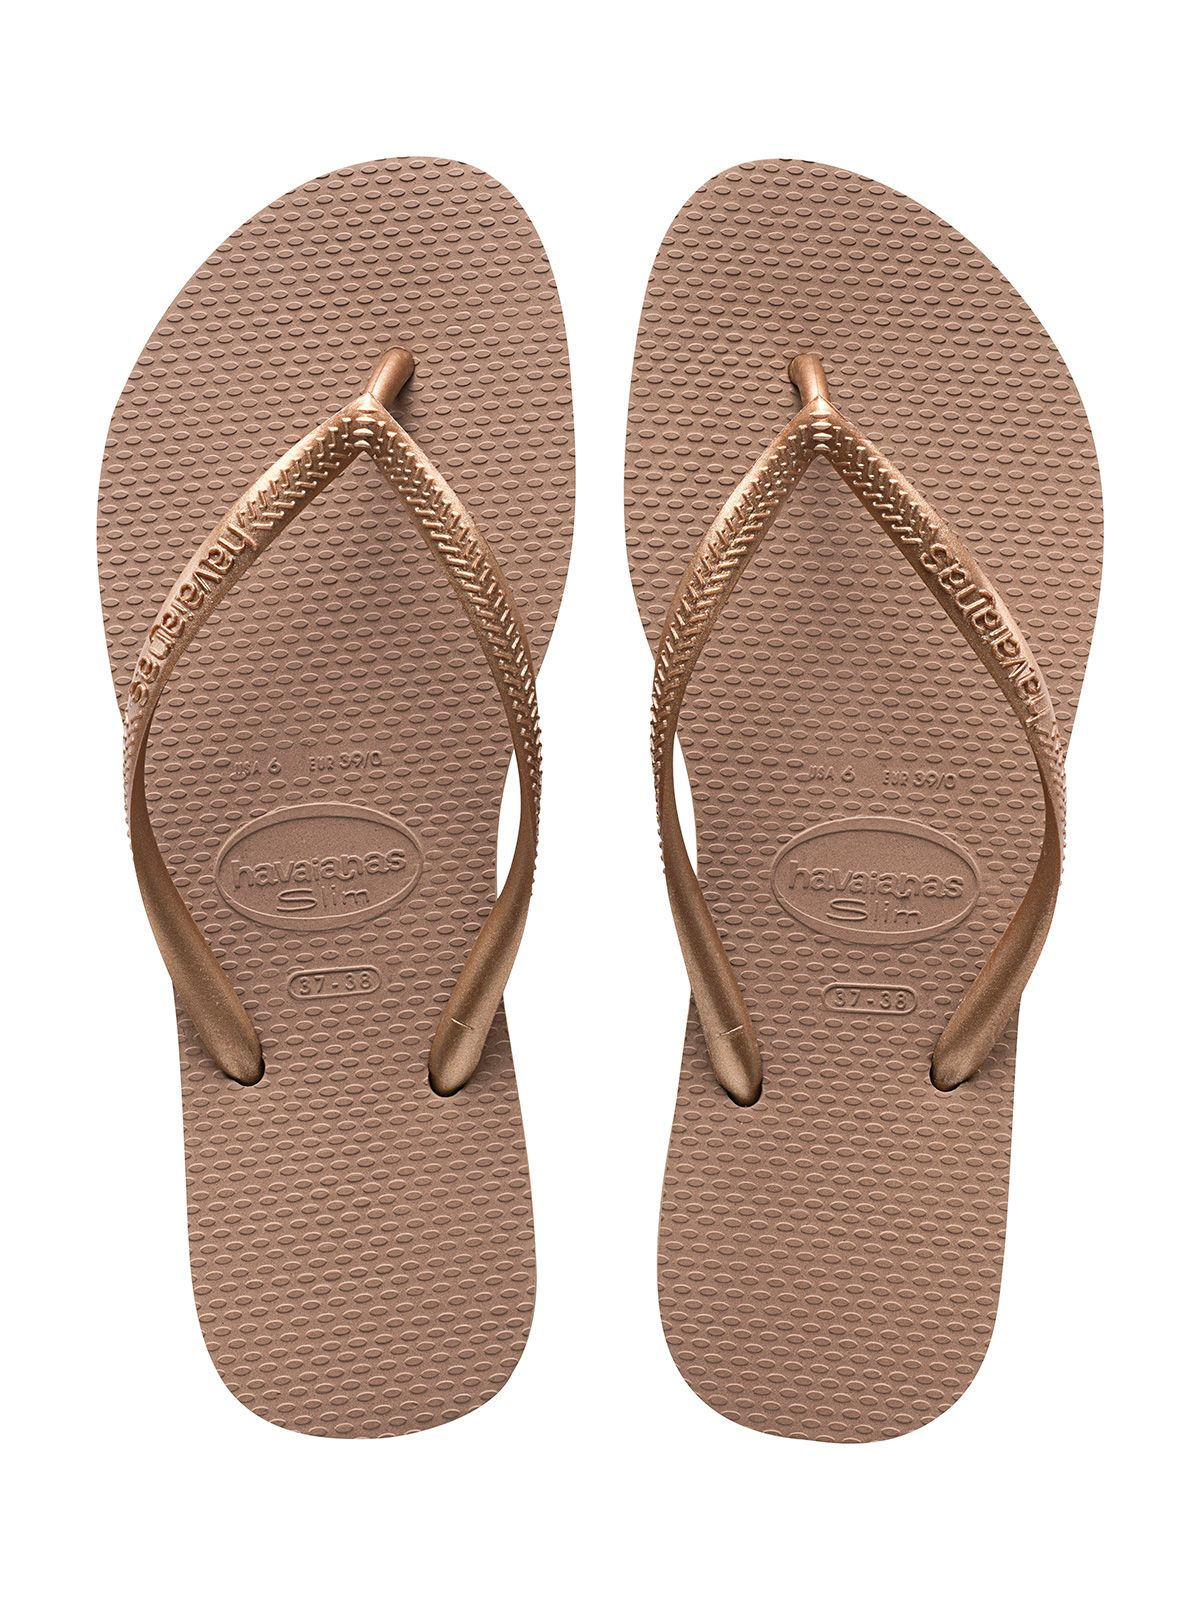 c8d8c557befe04 Nude Colour Havaianas Flip Flops With Rose Gold Strap - Slim Rose Gold